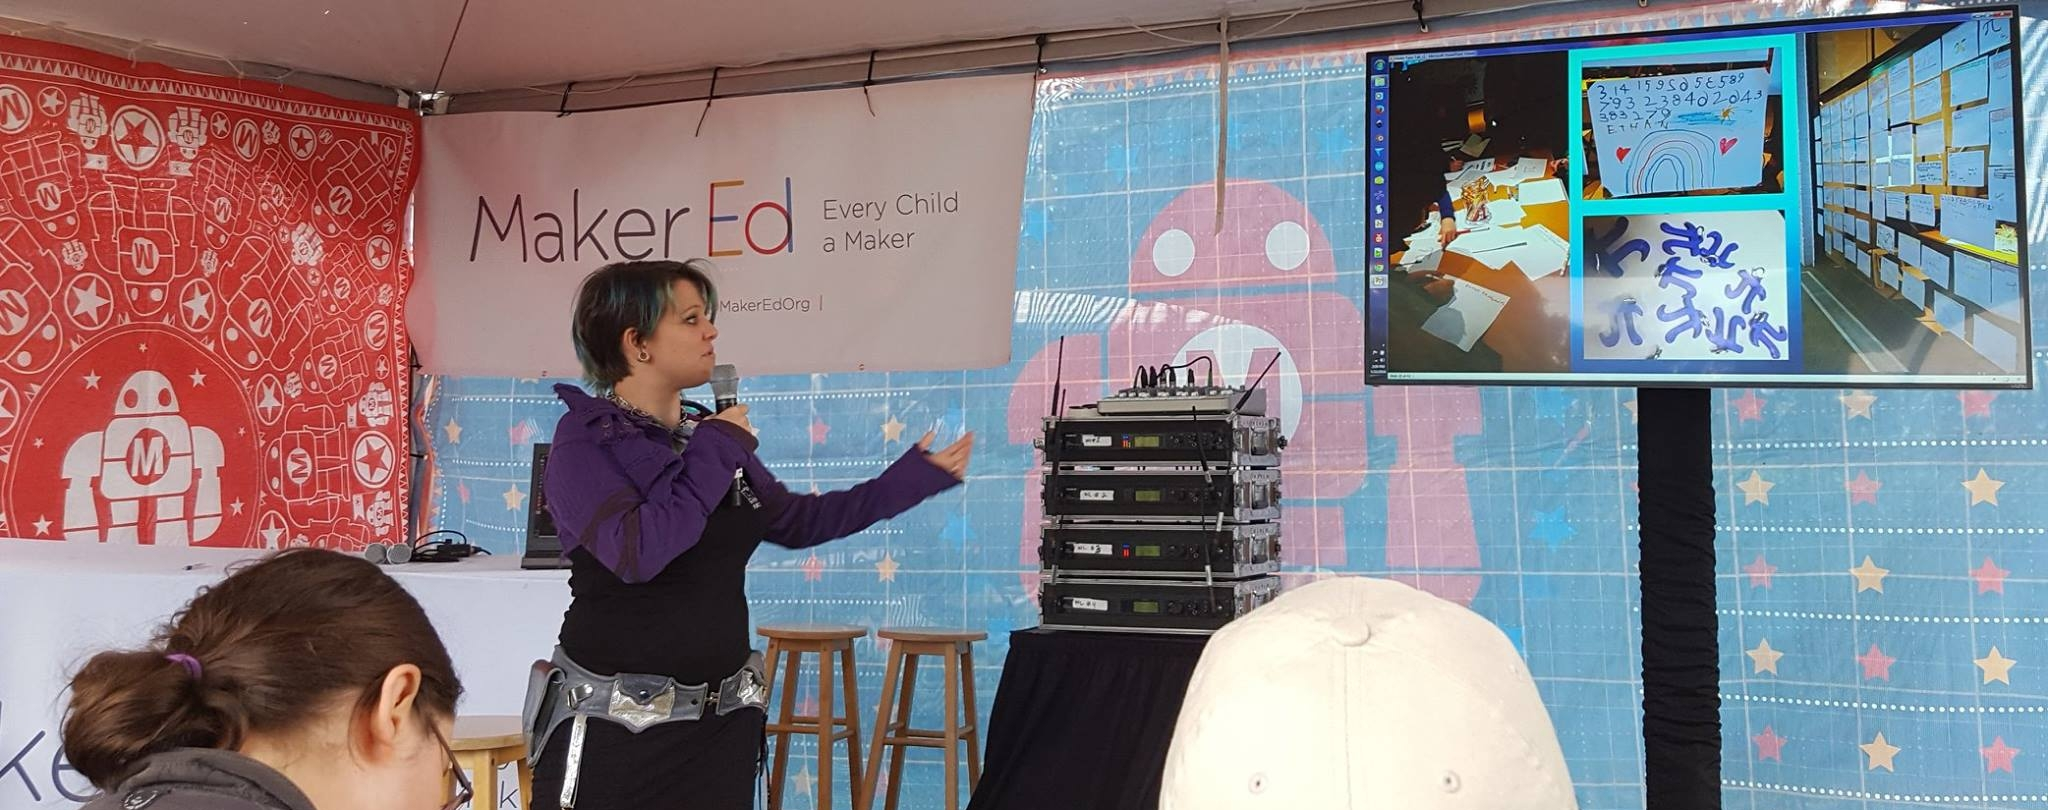 This photo was taken at the  Bay Area Maker Faire  in 2016 when I was invited to give a talk on Maker education in a science museum context.